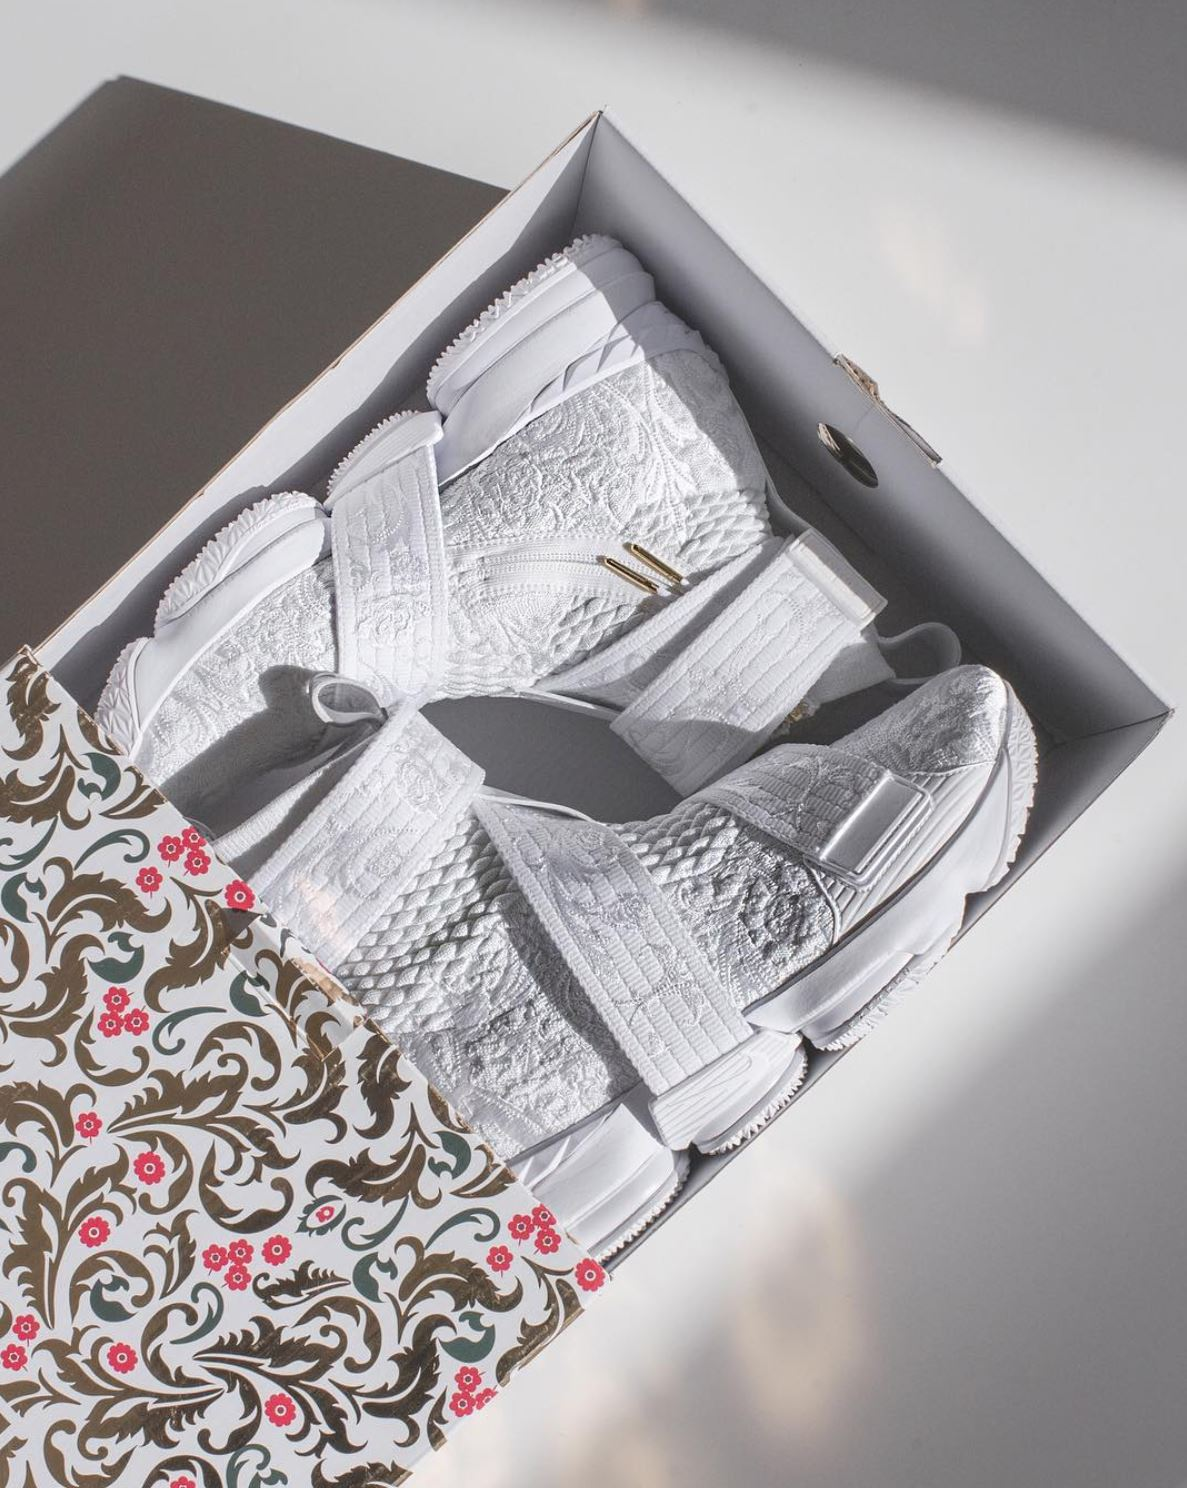 267d2ed0f0ec Ronnie Fieg Isn t Finished with the Nike LeBron 15 Lifestyle ...